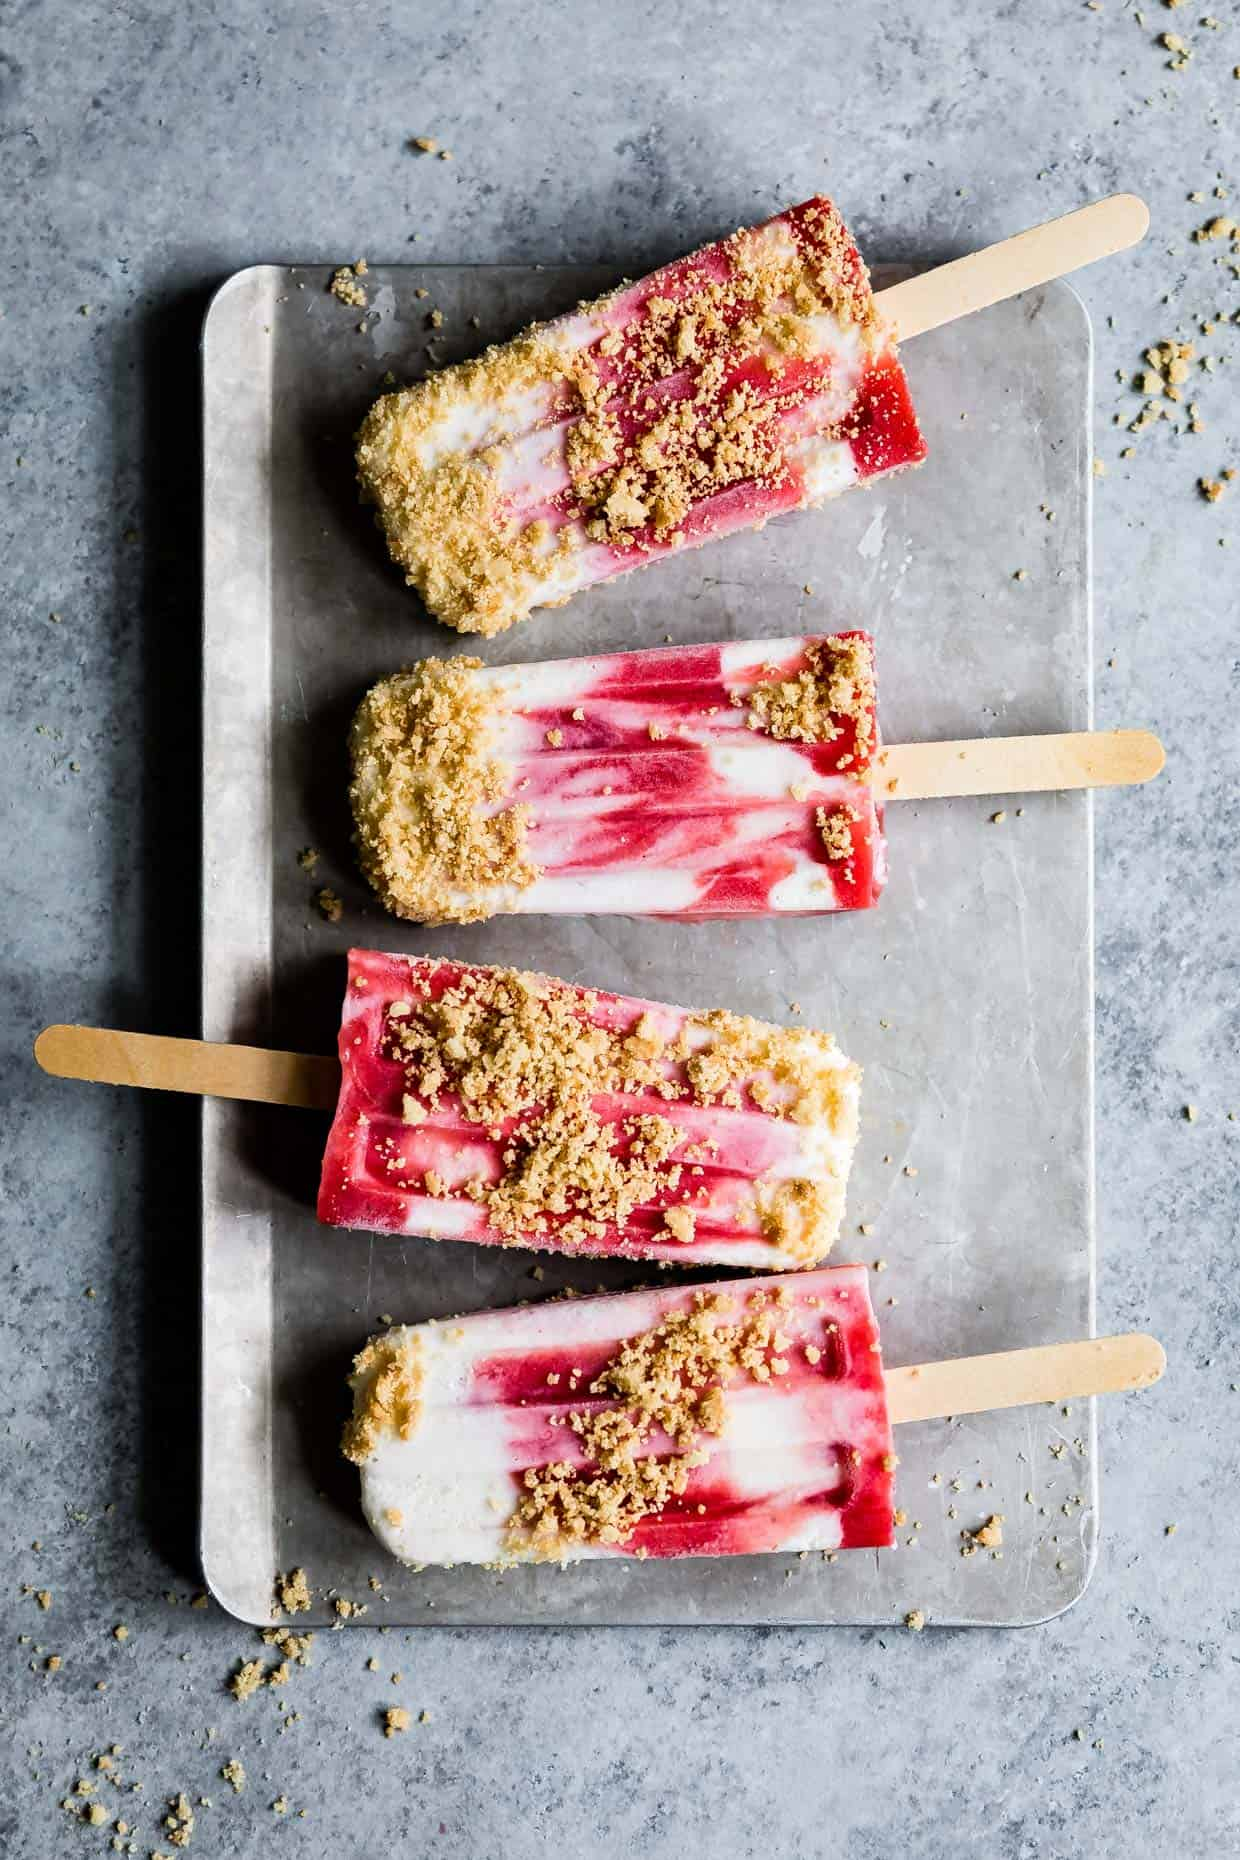 Strawberry Rhubarb Pie à la Mode Popsicles #popsicles #strawberrypie #recipe #rhubarb